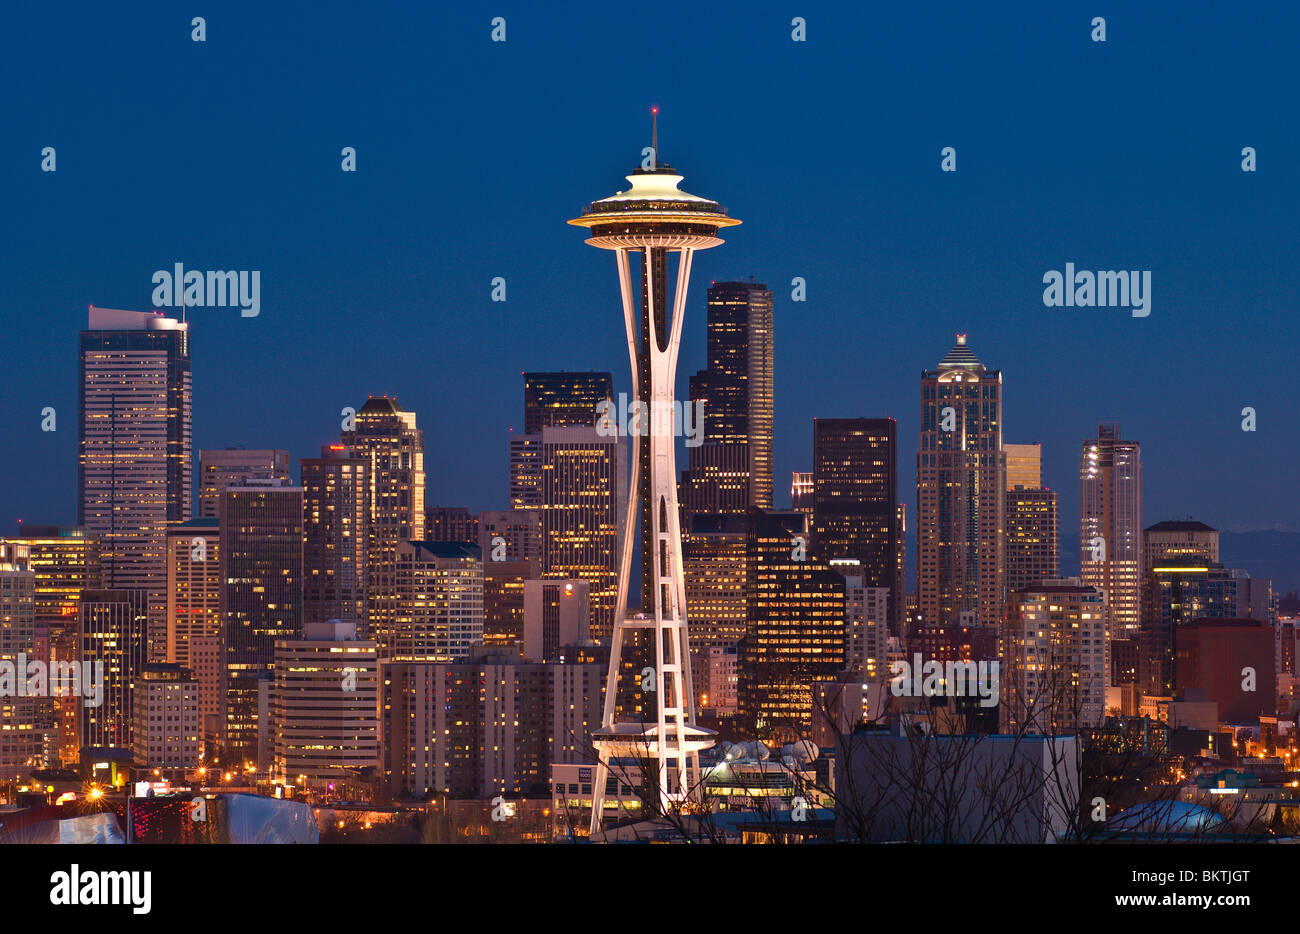 The Space Needle and downtown office buildings at twilight from Kerry Park on Queen Anne Hill Seattle, Washington. - Stock Image